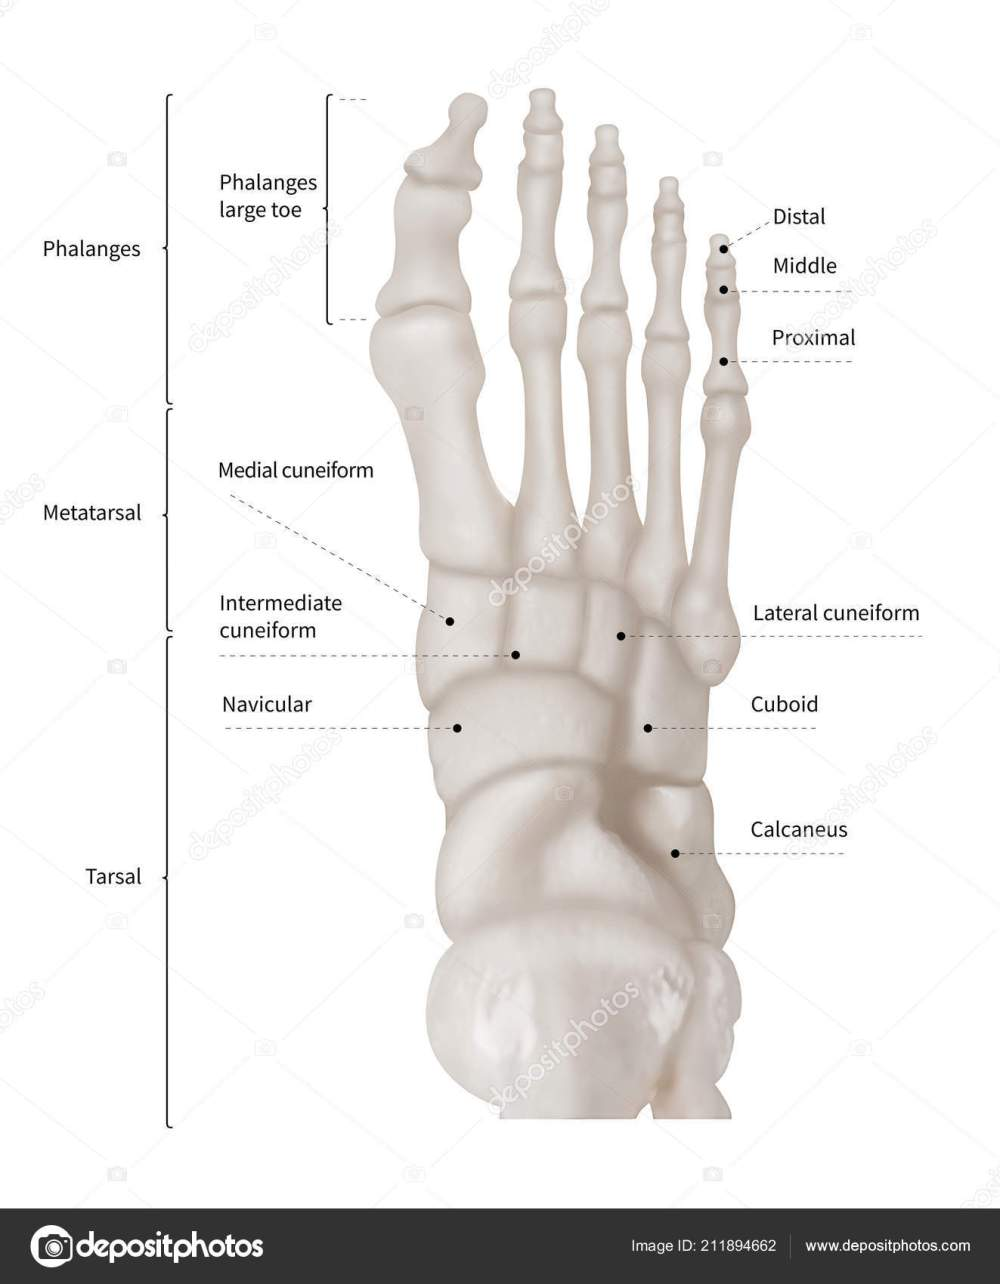 medium resolution of infographic diagram of human foot bone anatomy system anterior view 3d human anatomy medical diagram educational and human body concept isolated on